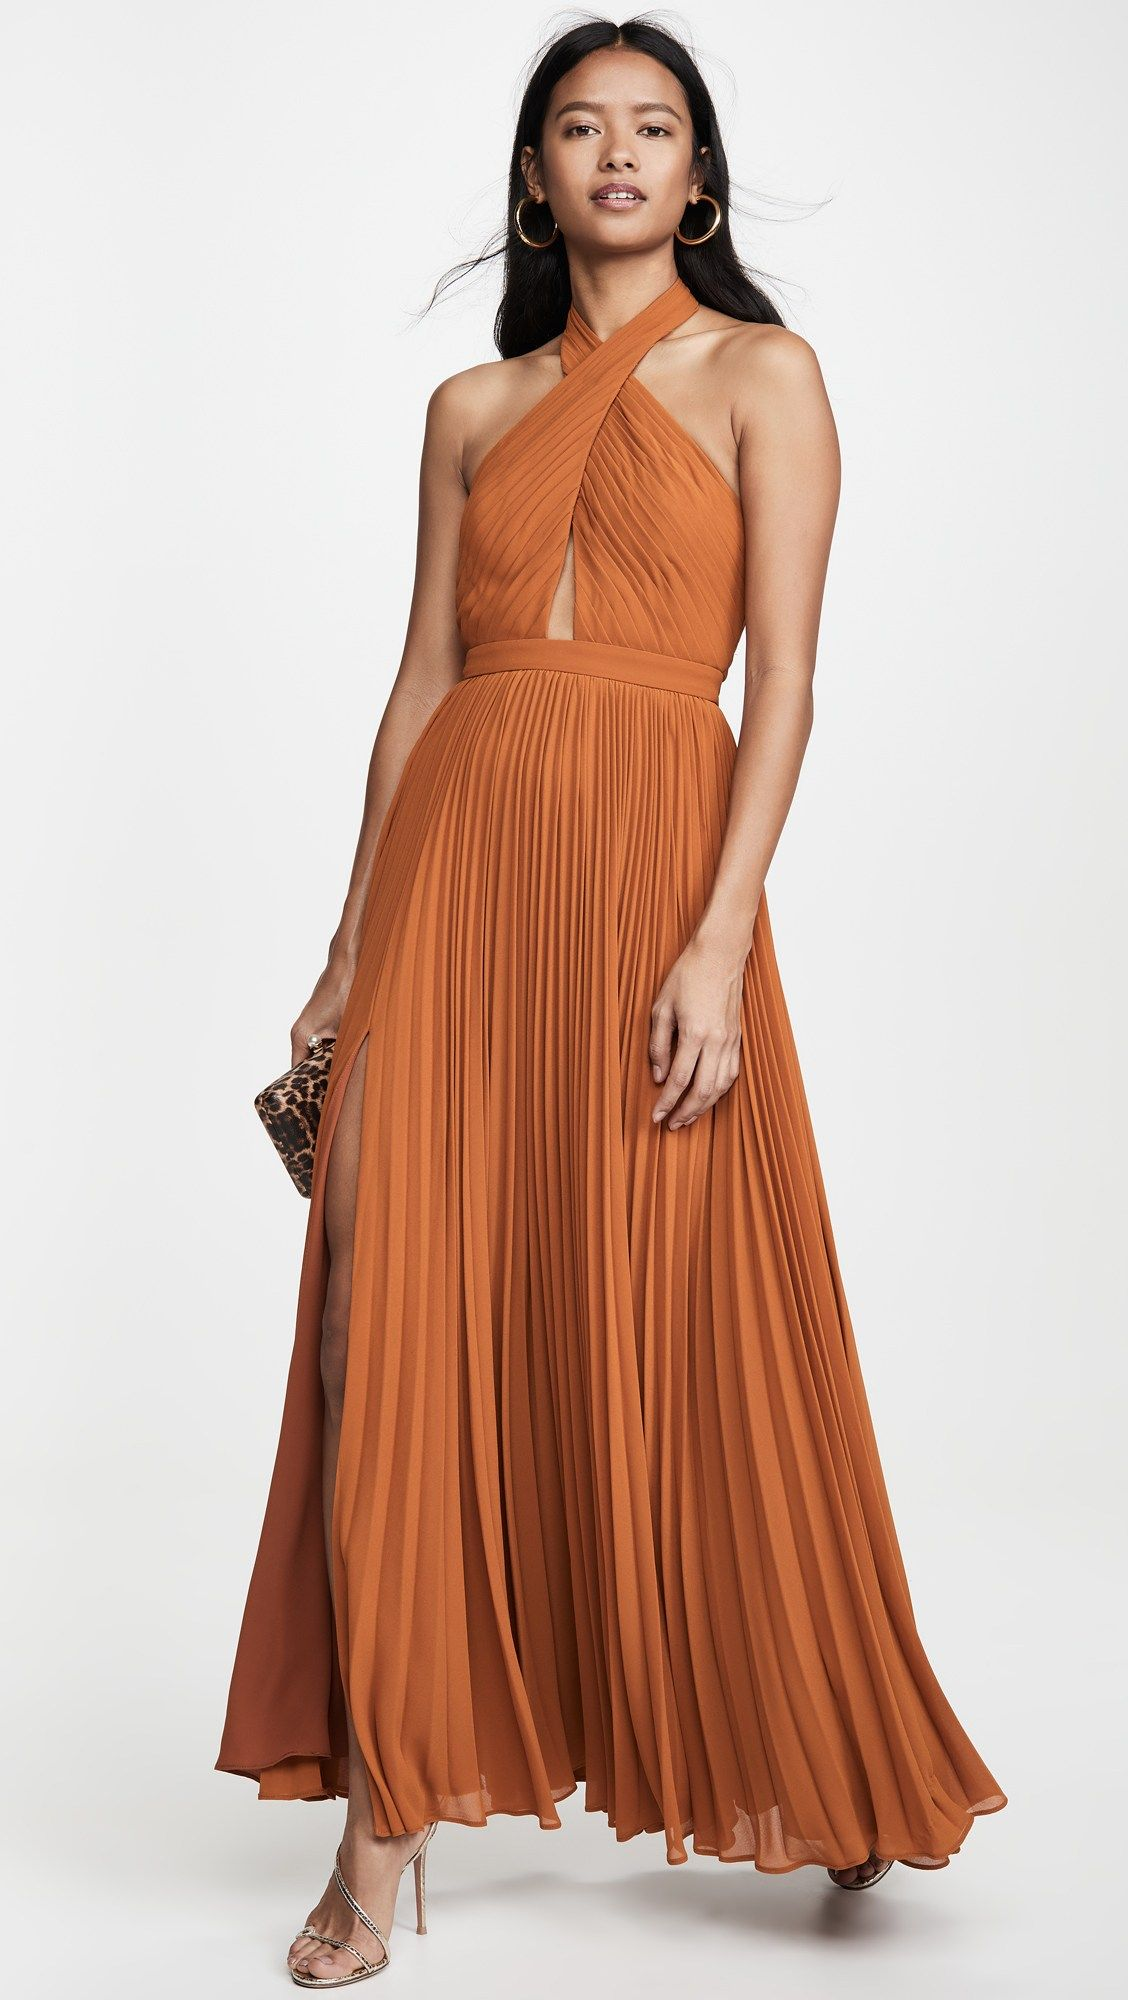 30 Wedding Guest Outfits in 2020 Designer